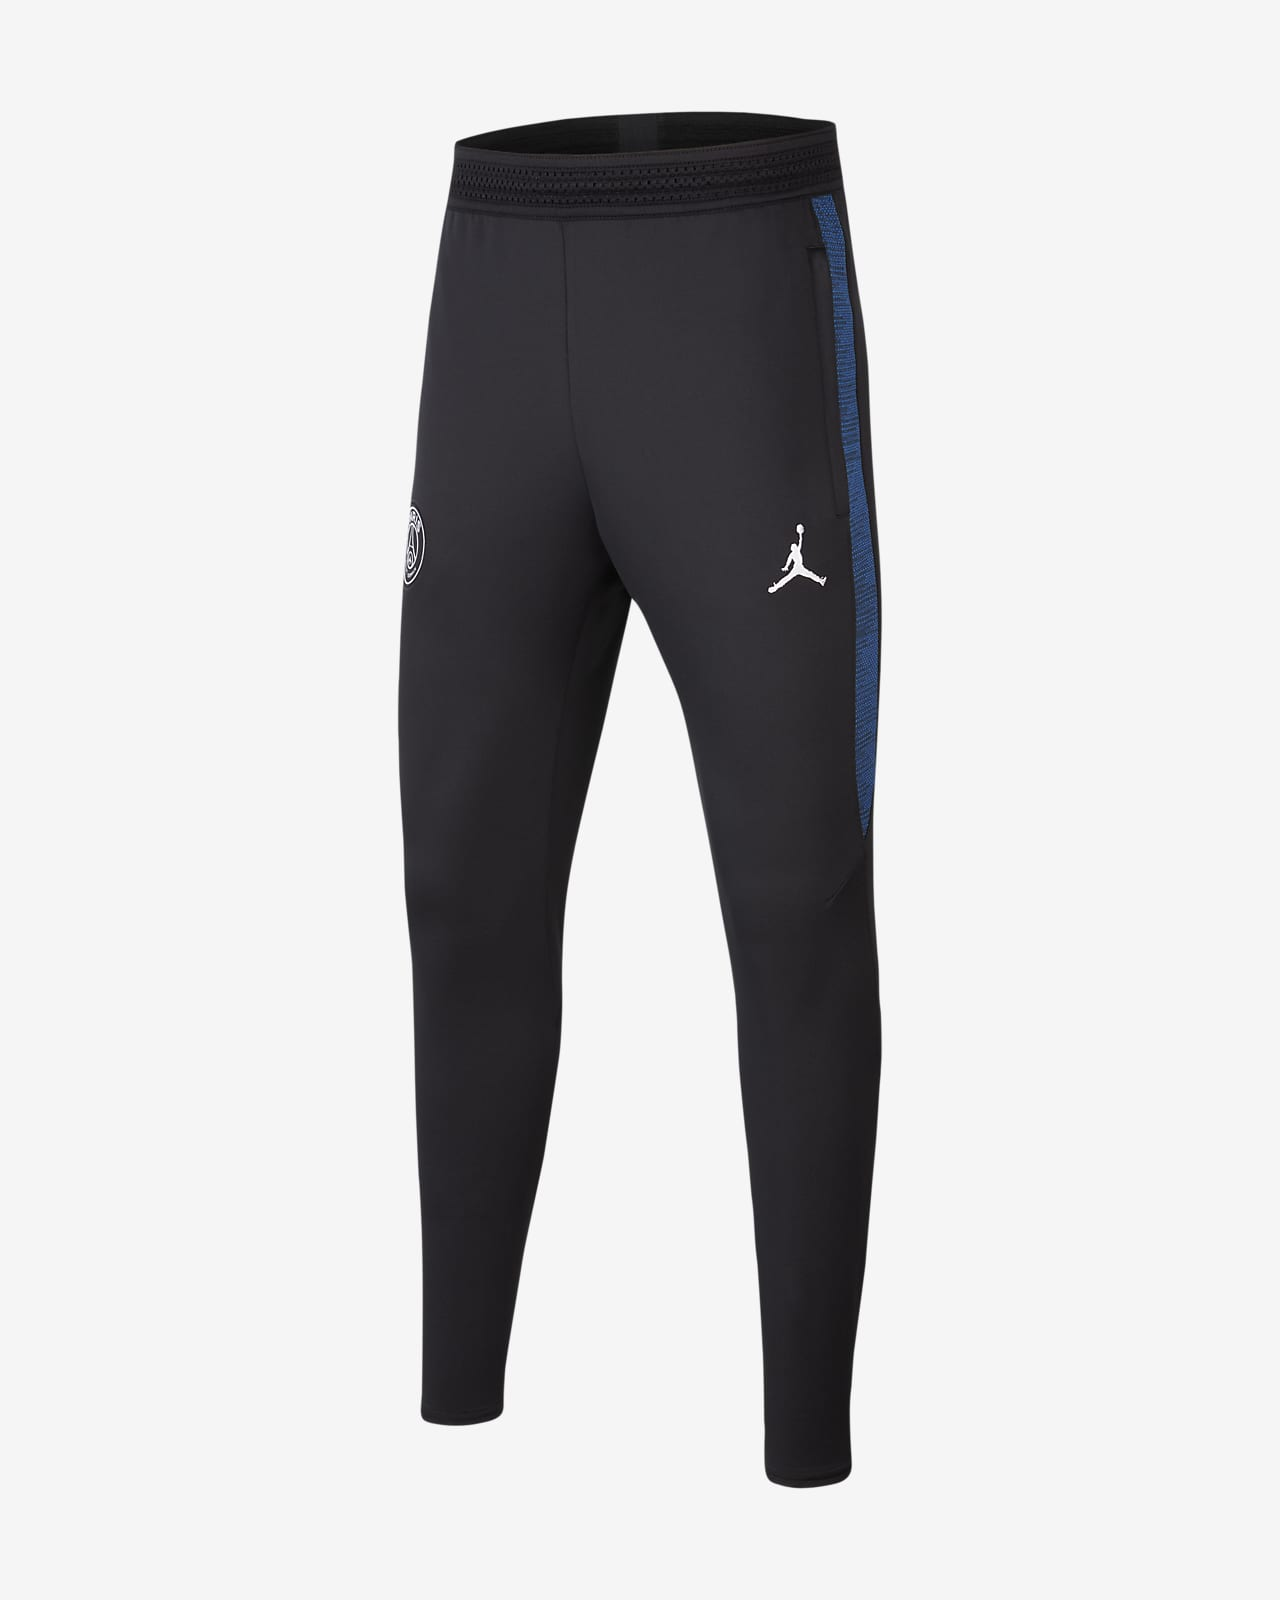 Pantalon de football Jordan x Paris Saint-Germain Strike pour Enfant plus âgé